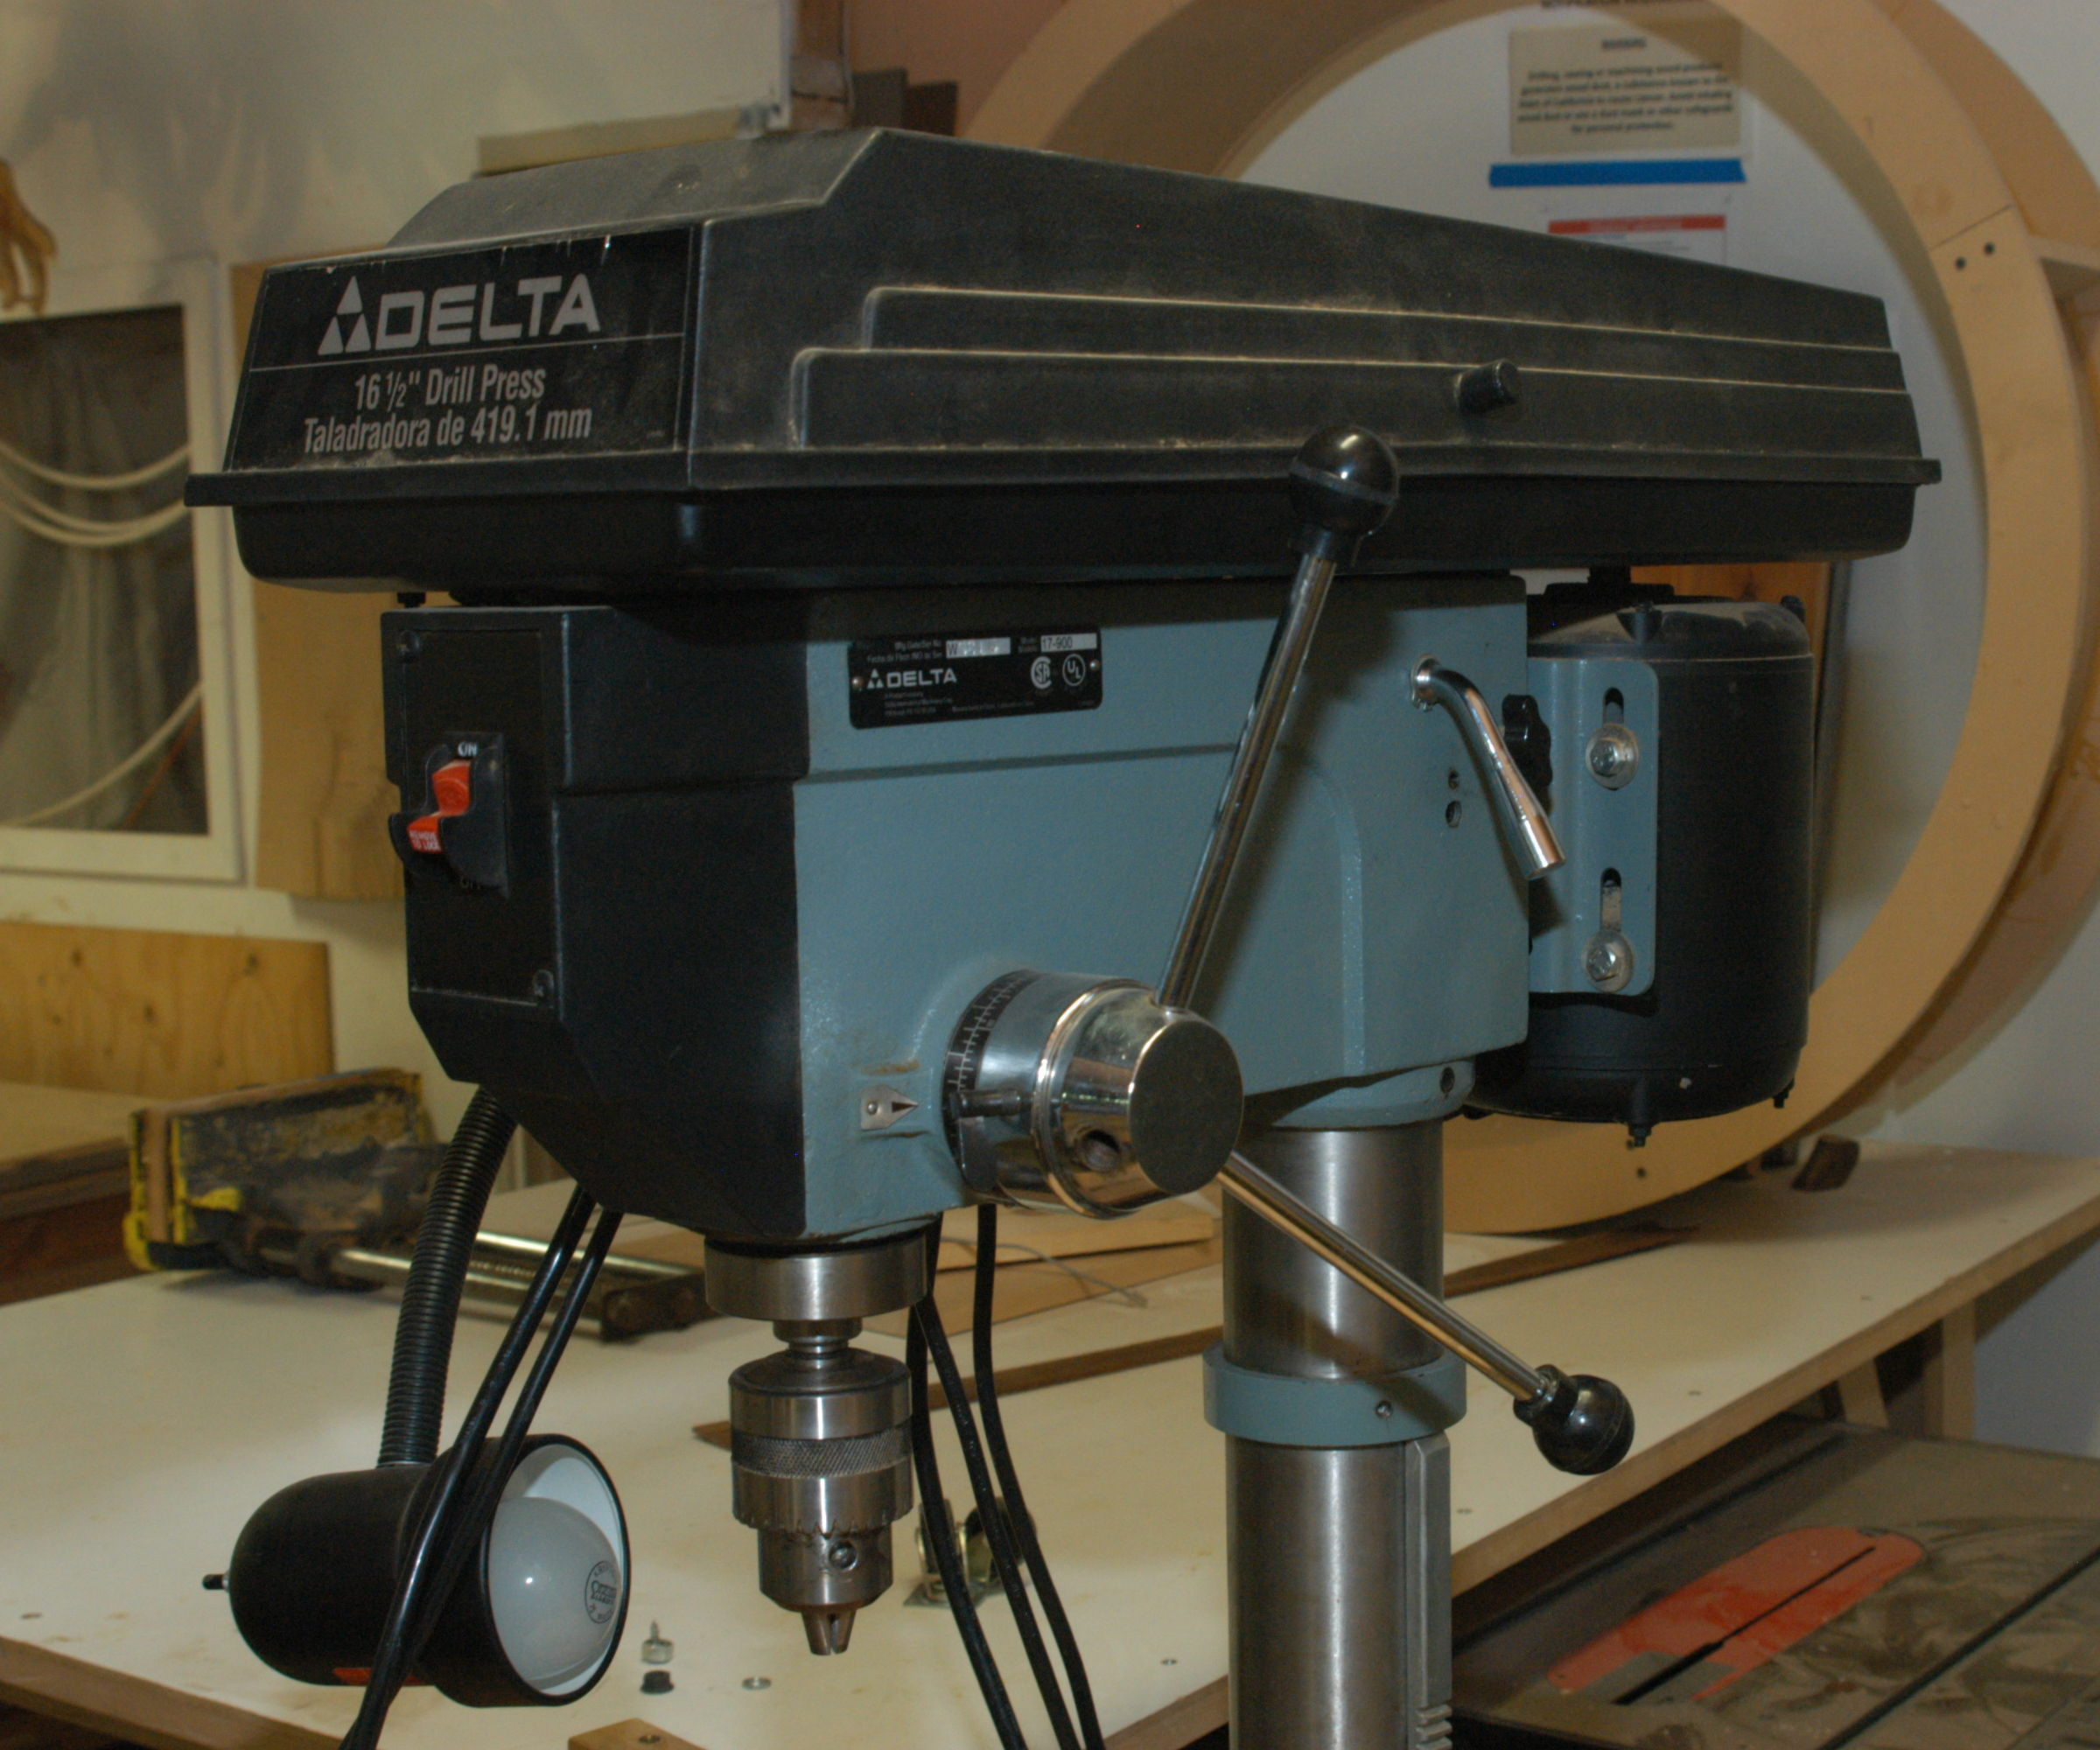 Changing Speeds on the 12 speed Drill Press